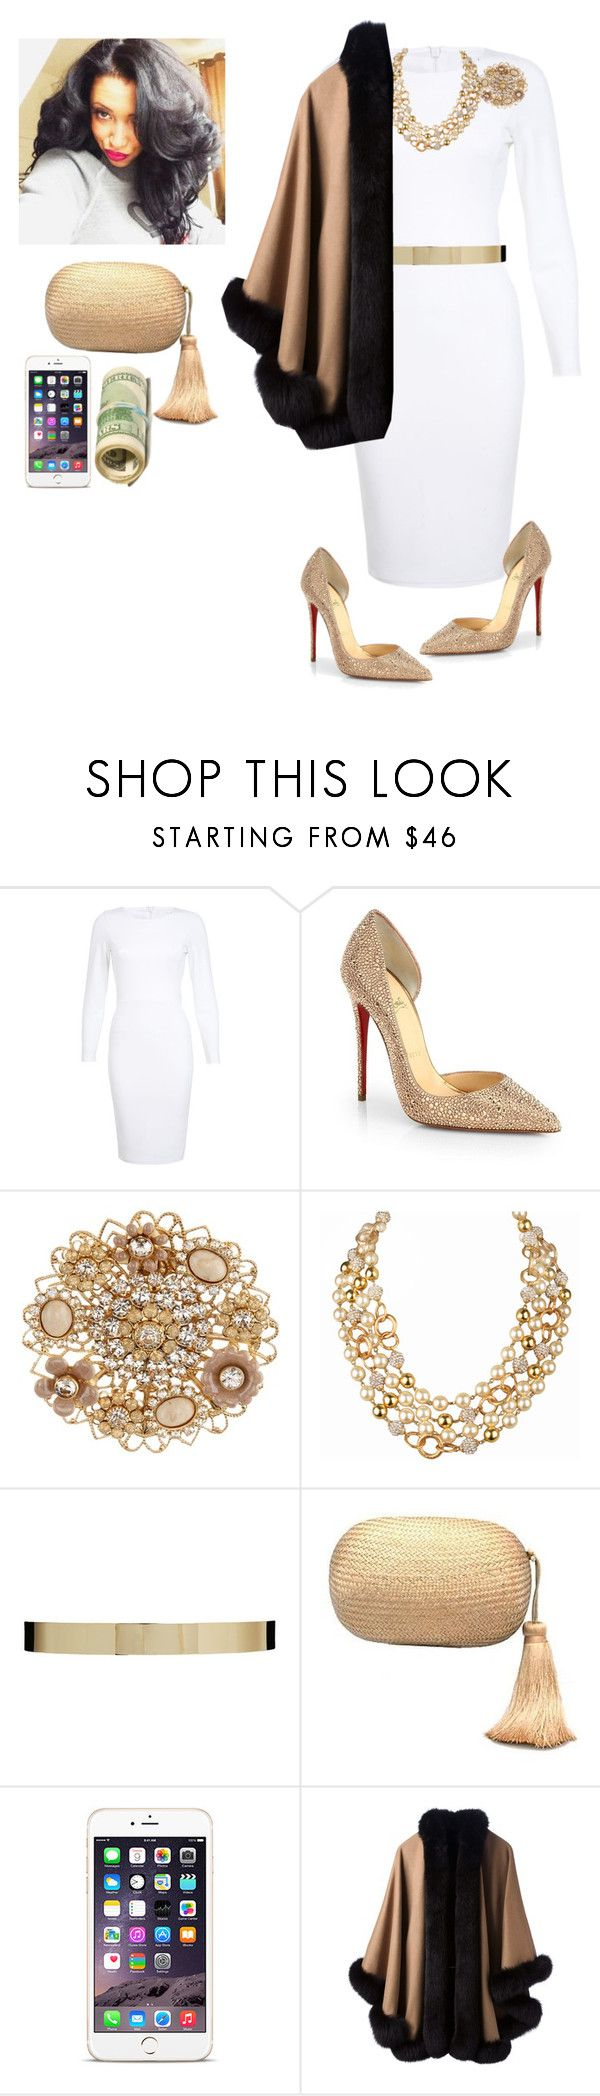 """Church!!!!!"" by cogic-fashion ❤ liked on Polyvore featuring Miss Selfridge, Christian Louboutin, Liz Palacios, Chanel, ASOS, KOTUR and 32 Paradis Sprung Frères"